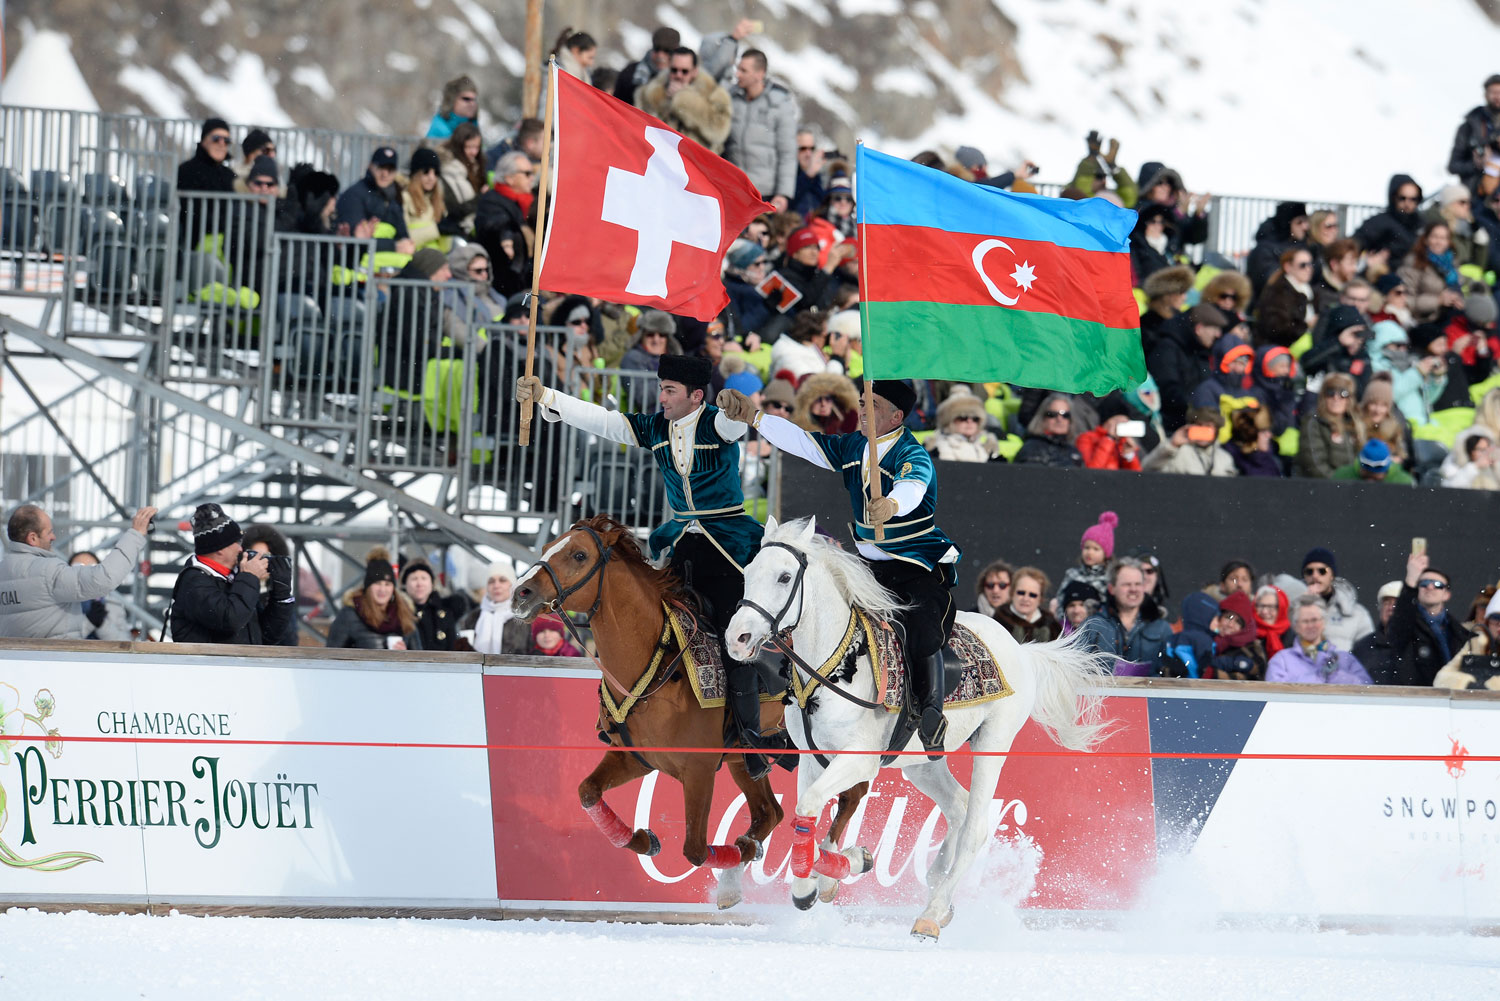 The Sardadchi cavalry team at the 35th Snow Polo World Cup